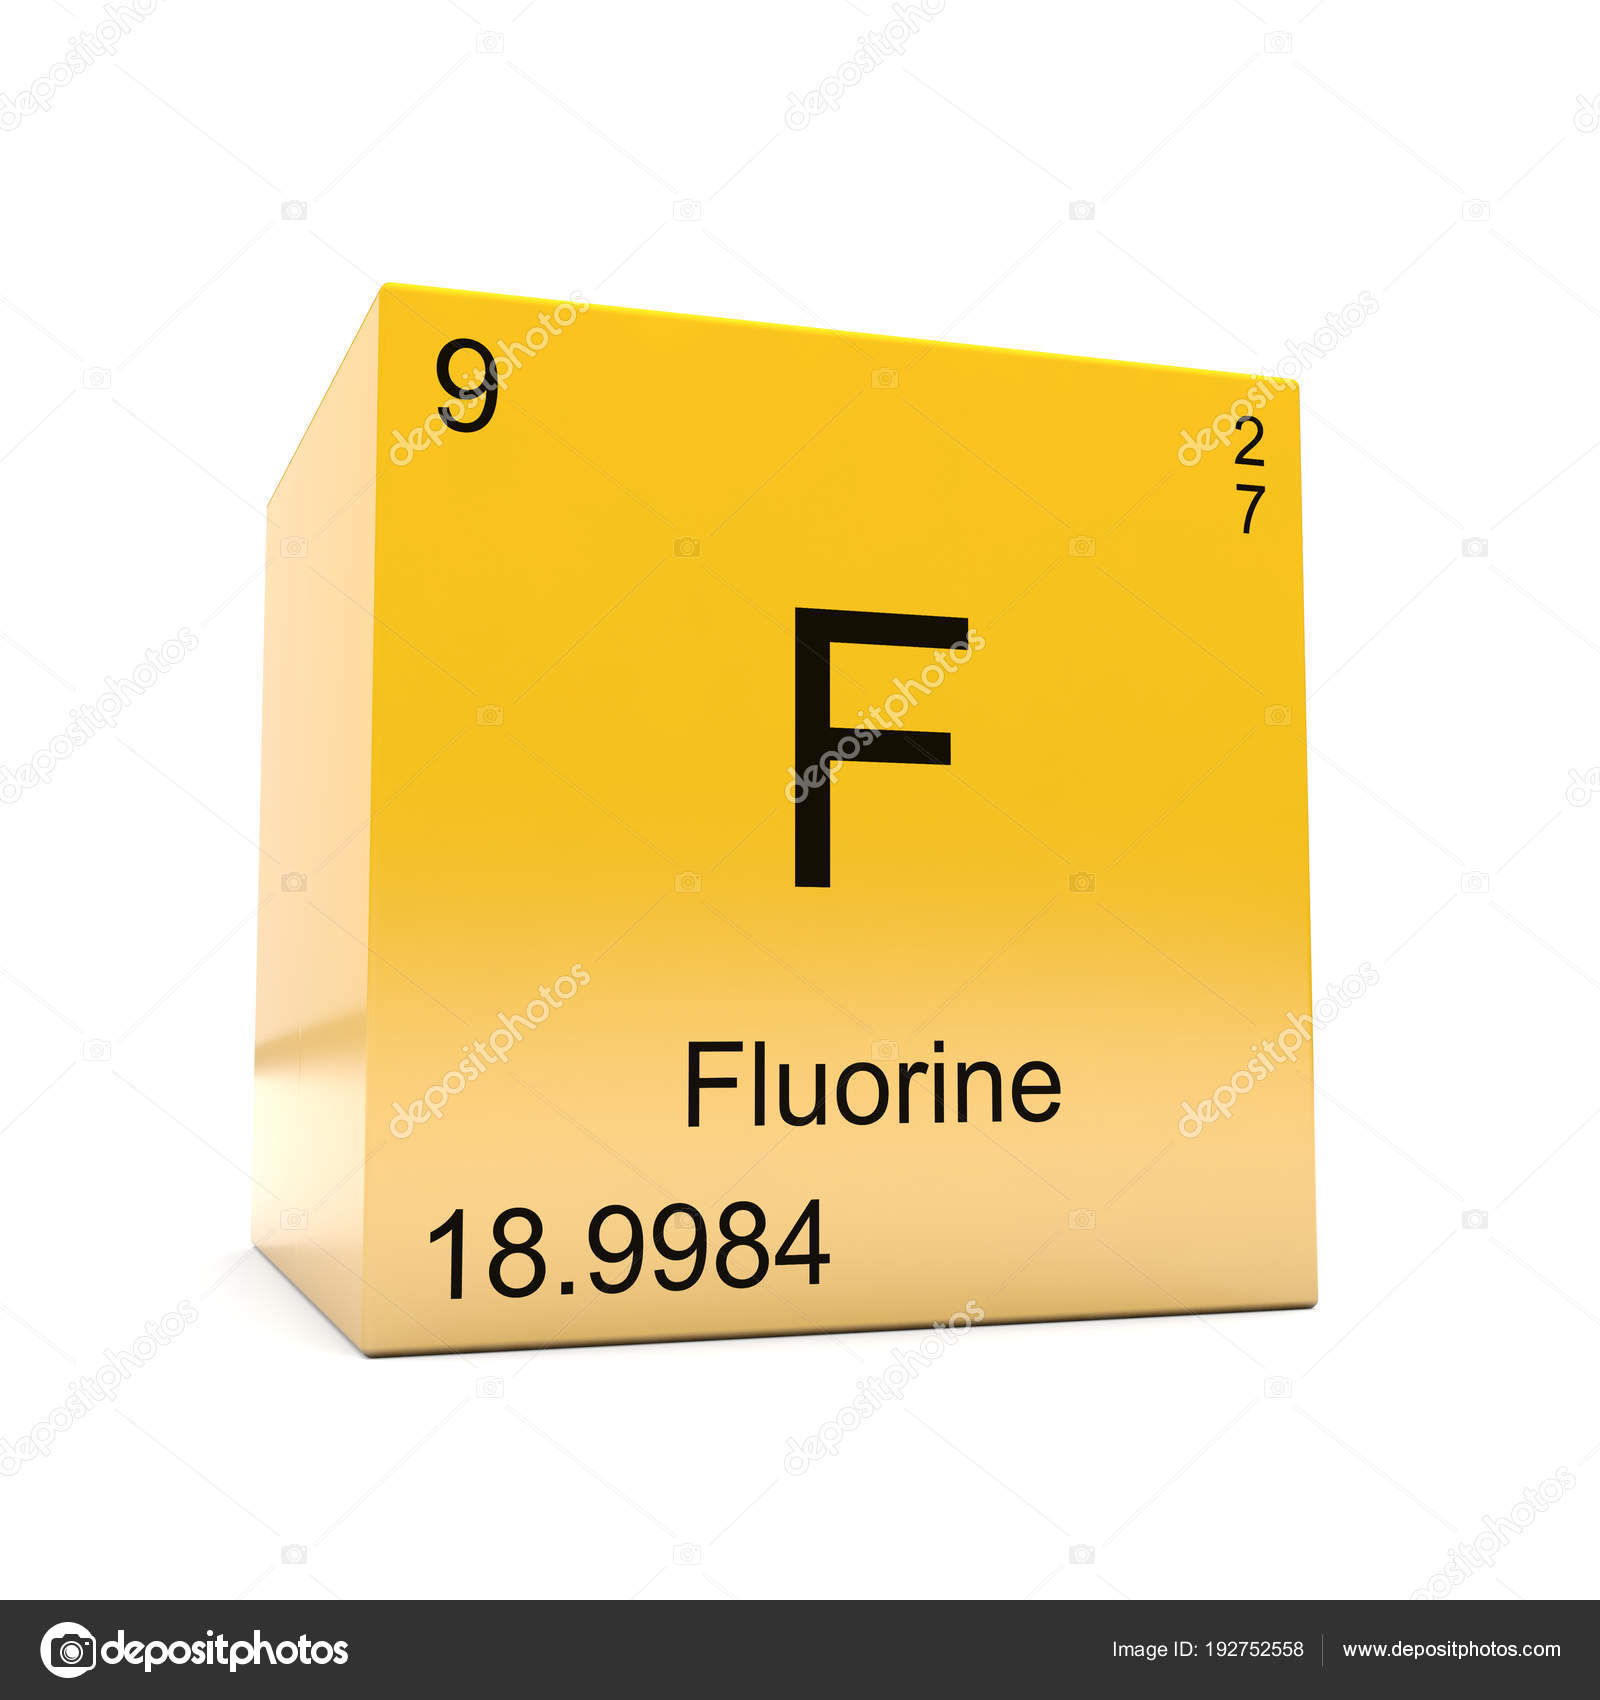 Fluorine Chemical Element Symbol Periodic Table Displayed Glossy